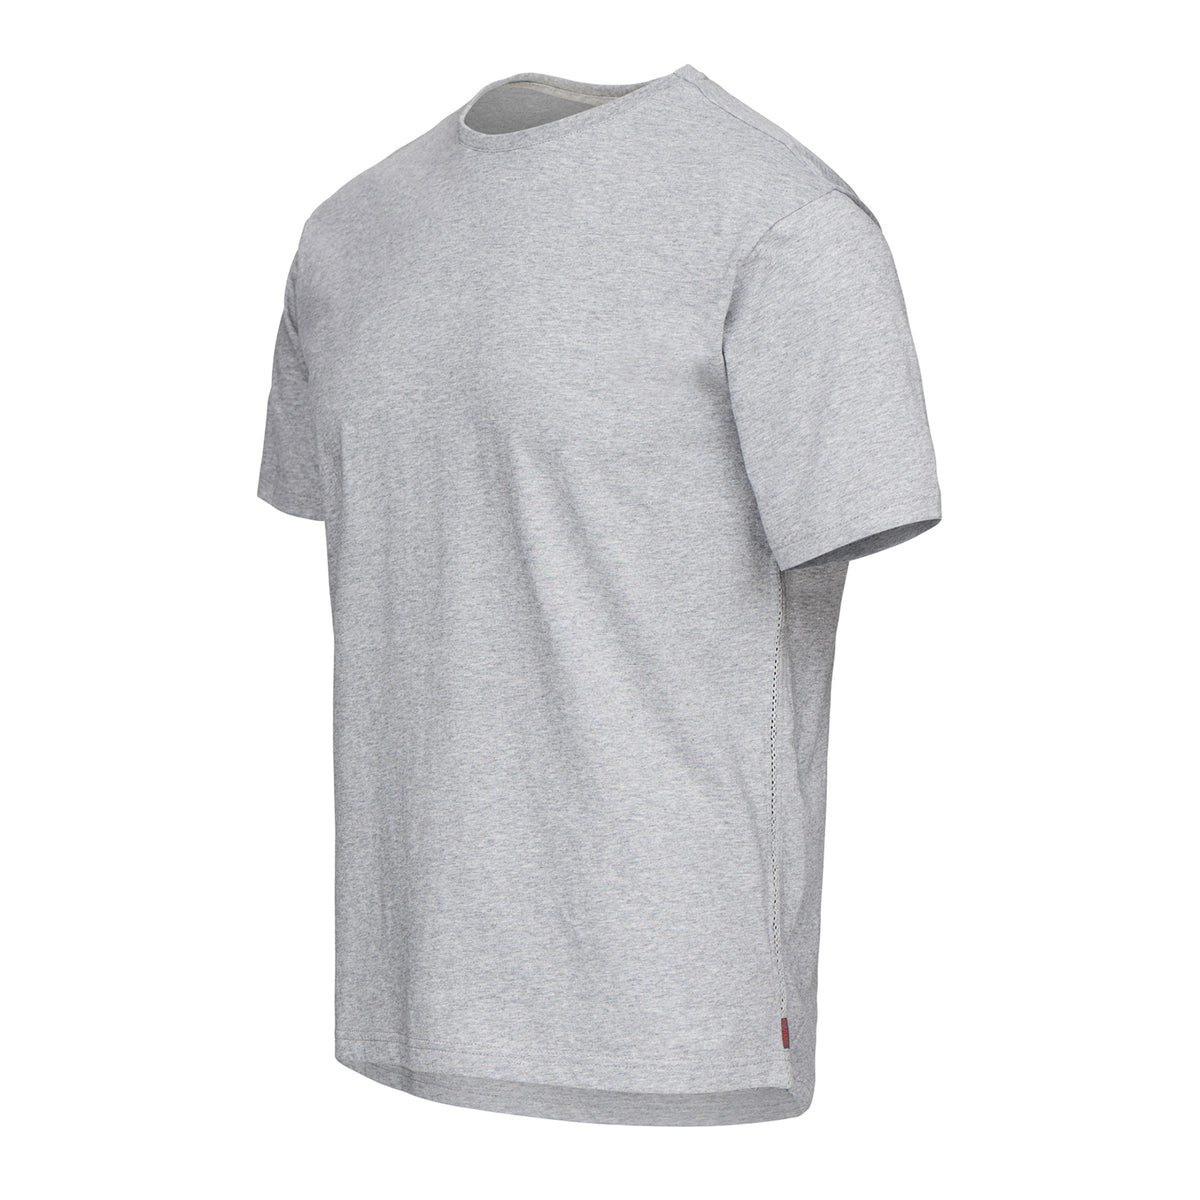 Breeze T-Shirt - background::white,variant::Gray Melange